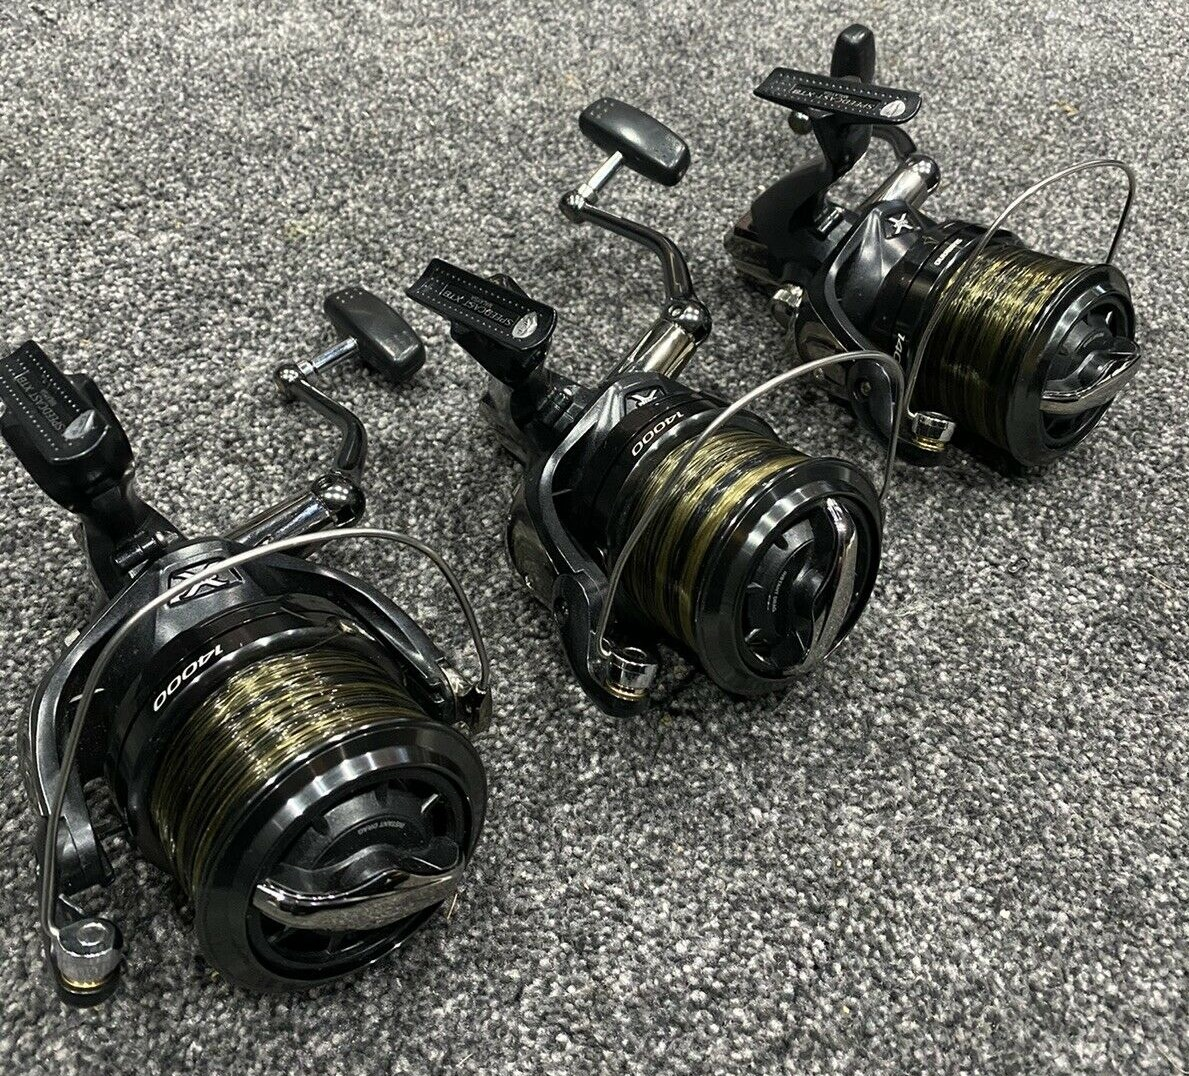 Ad - Shimano Speed<b>Cast</b> 14000 XTB x3 On eBay here -->> https://t.co/l1QwjyBJi0  #carpfis